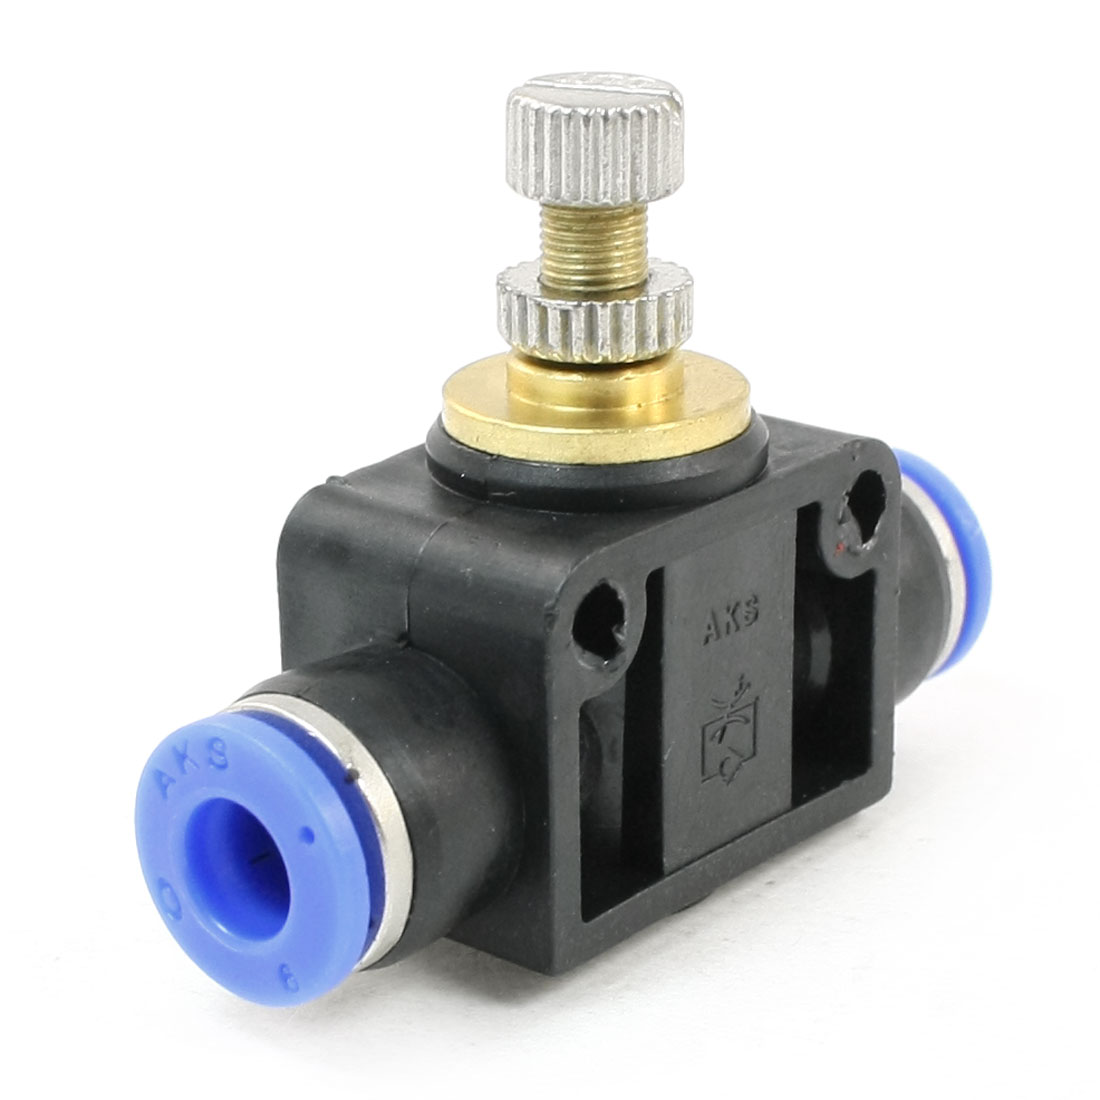 T-joint Type 6mm Dia Connecting Double Way Flow Limiting Pneumatic Valve